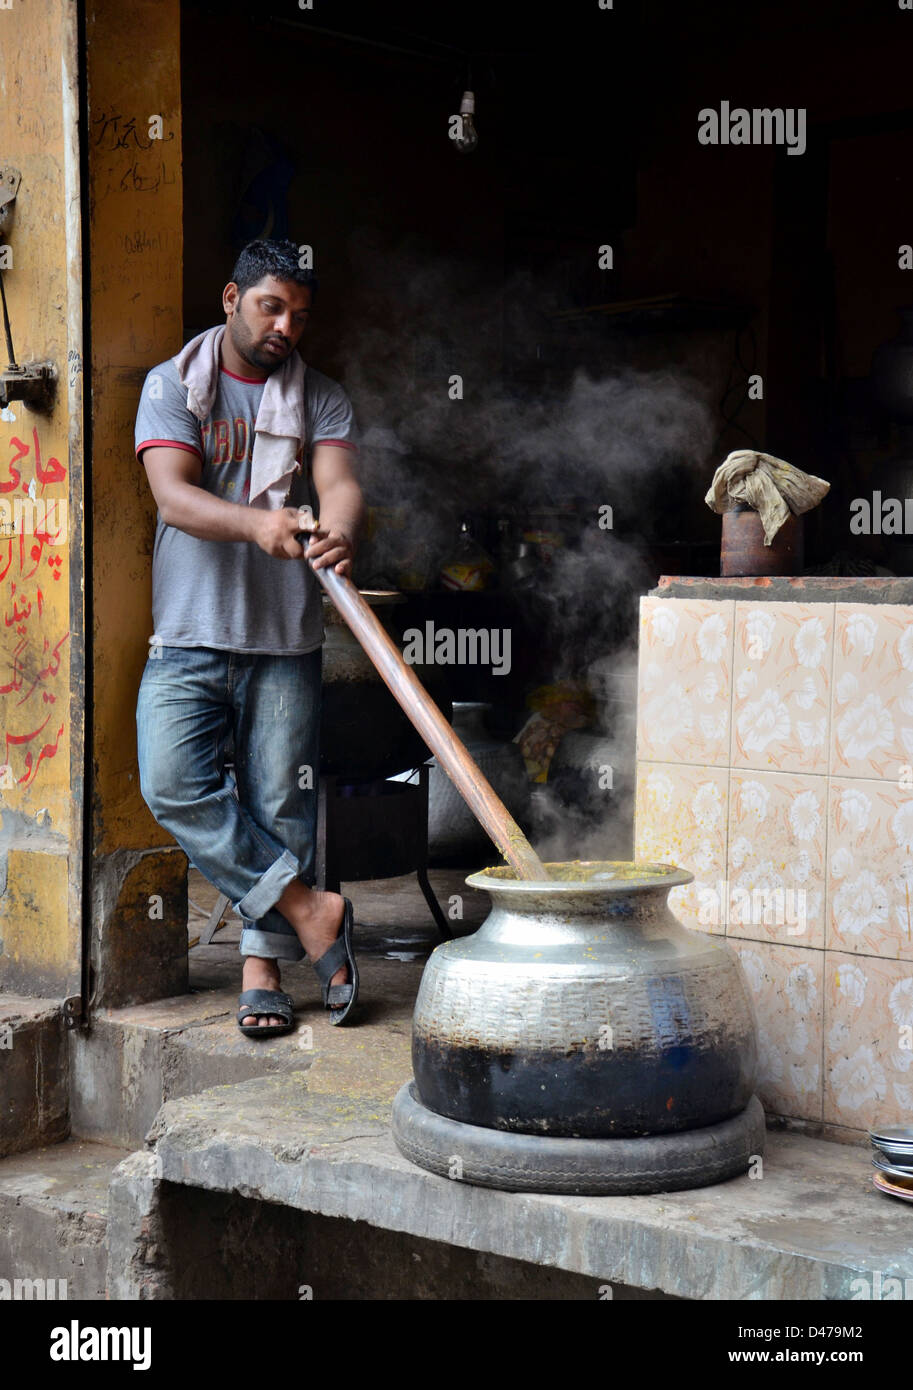 Cooking breakfast early morning Lahore Pakistan - Stock Image